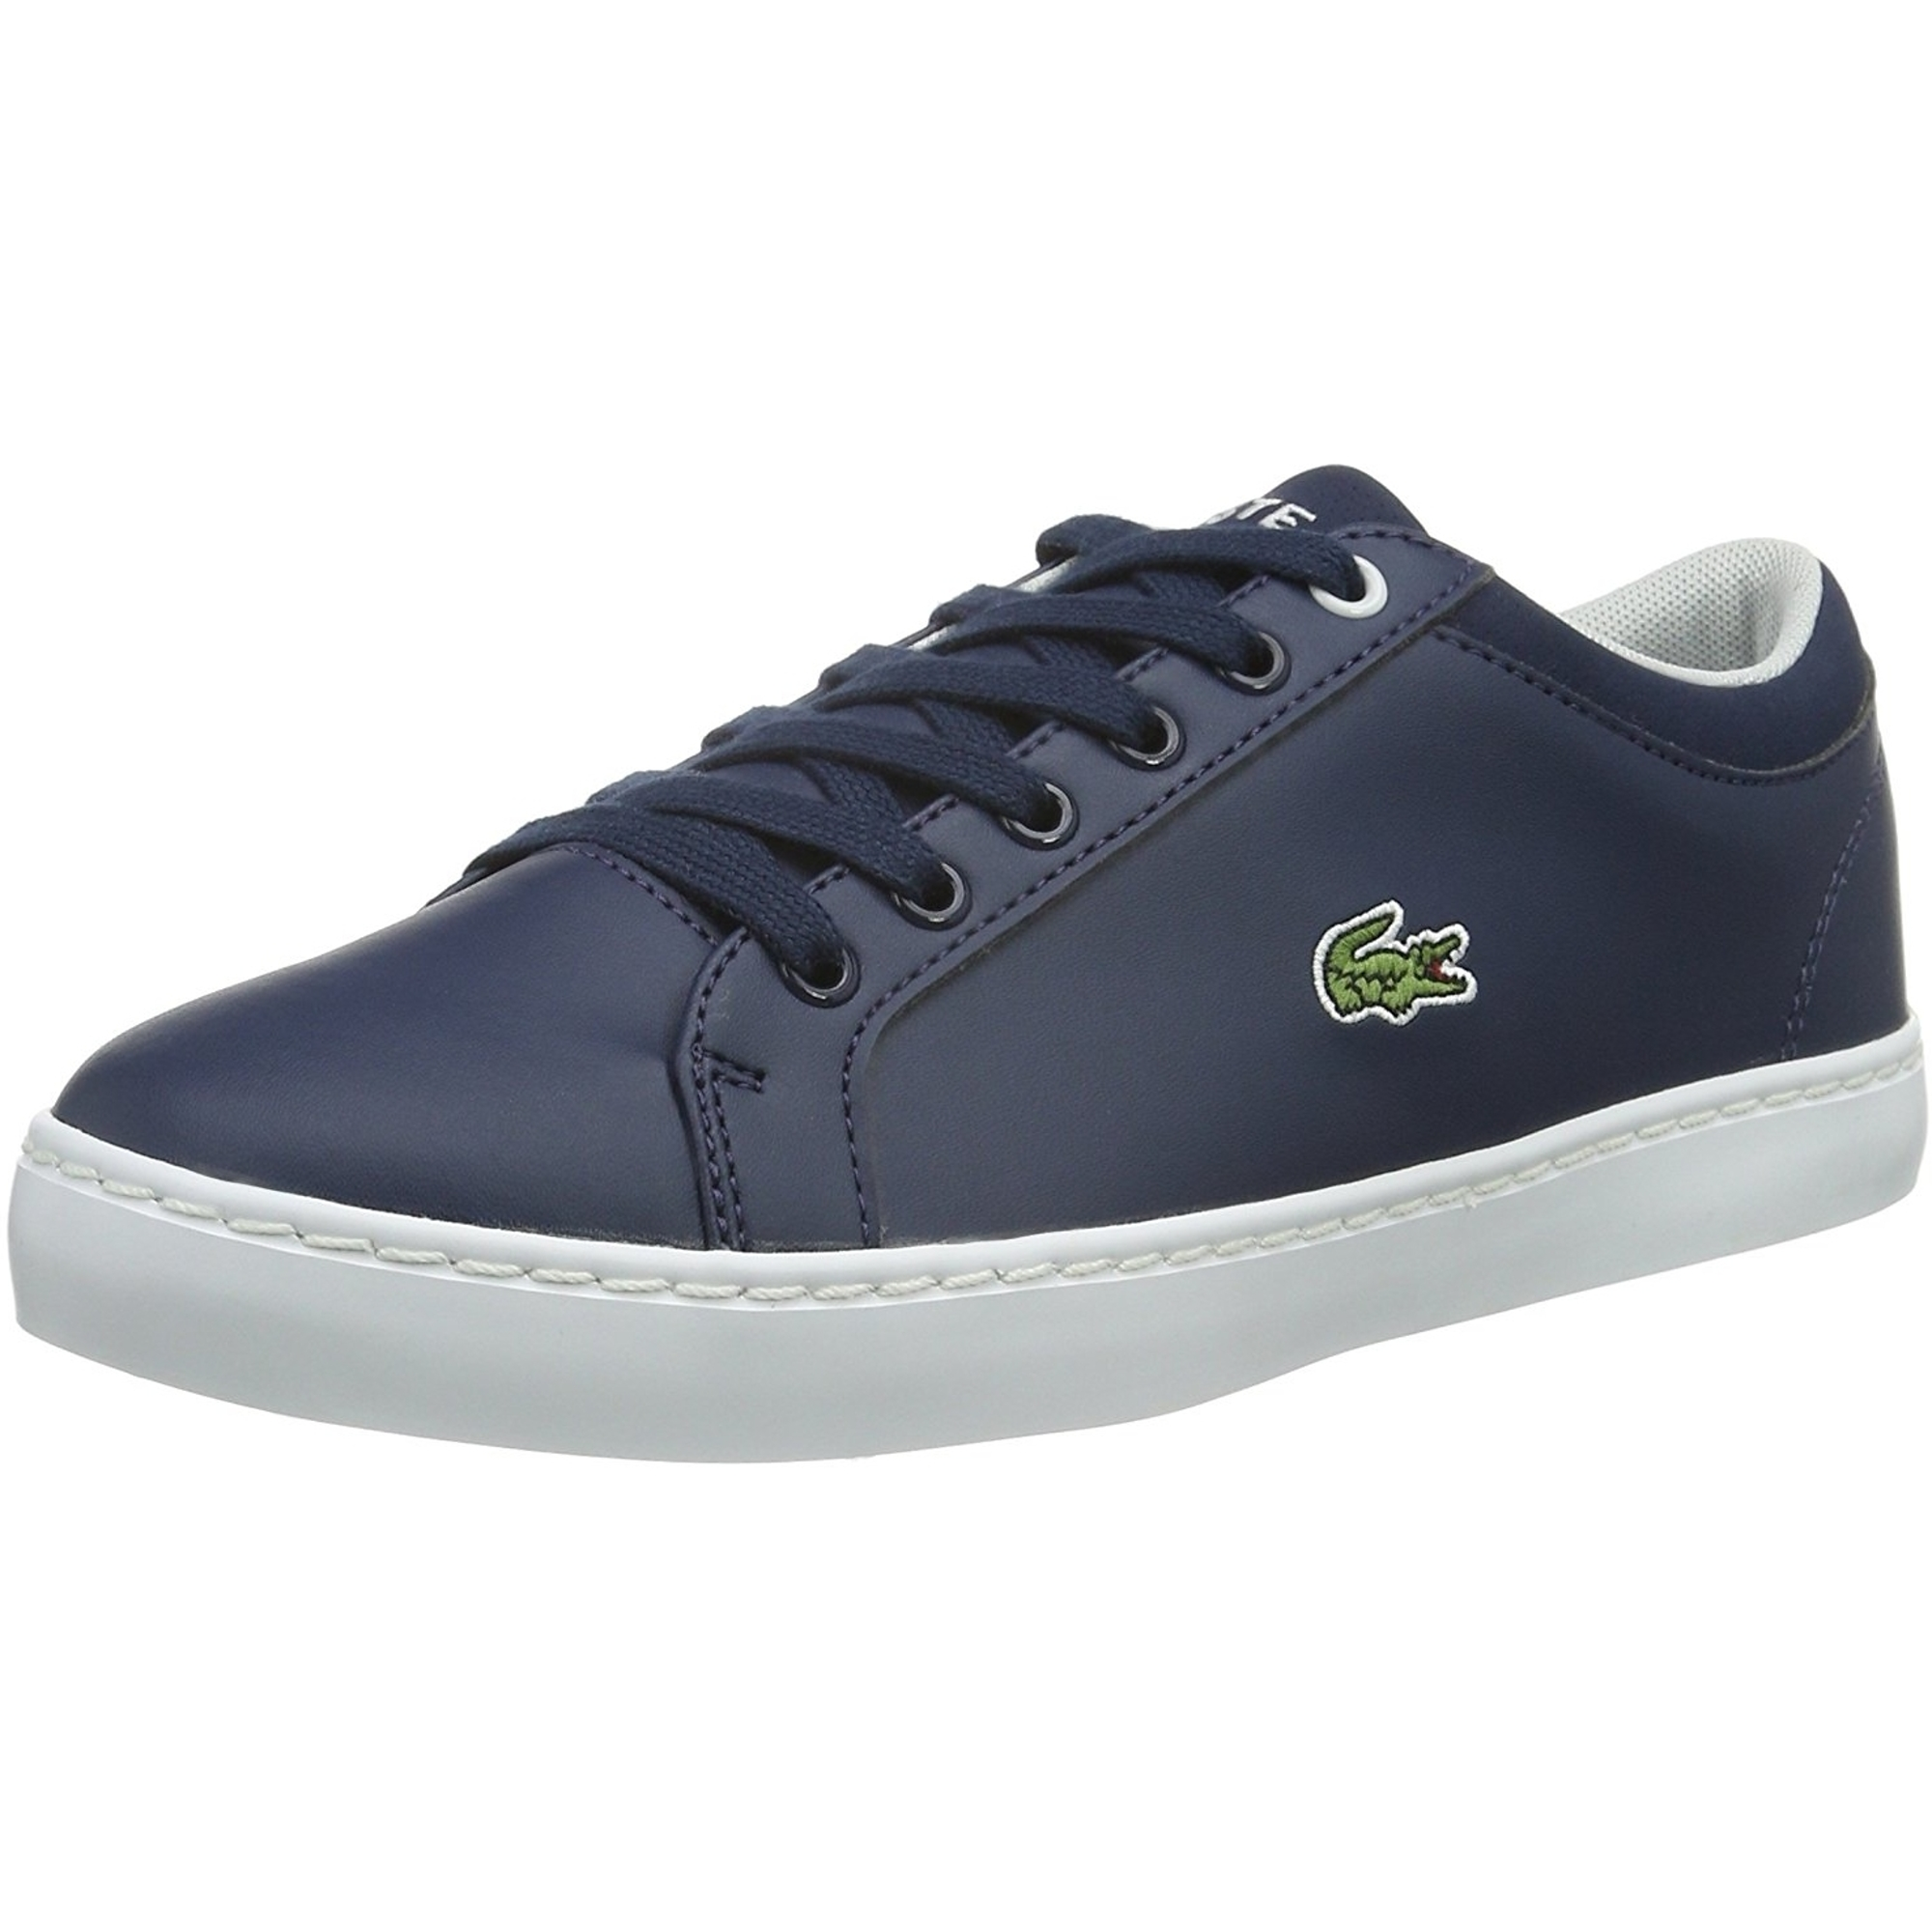 Lacoste Straightset BL 1 Navy Synthetic